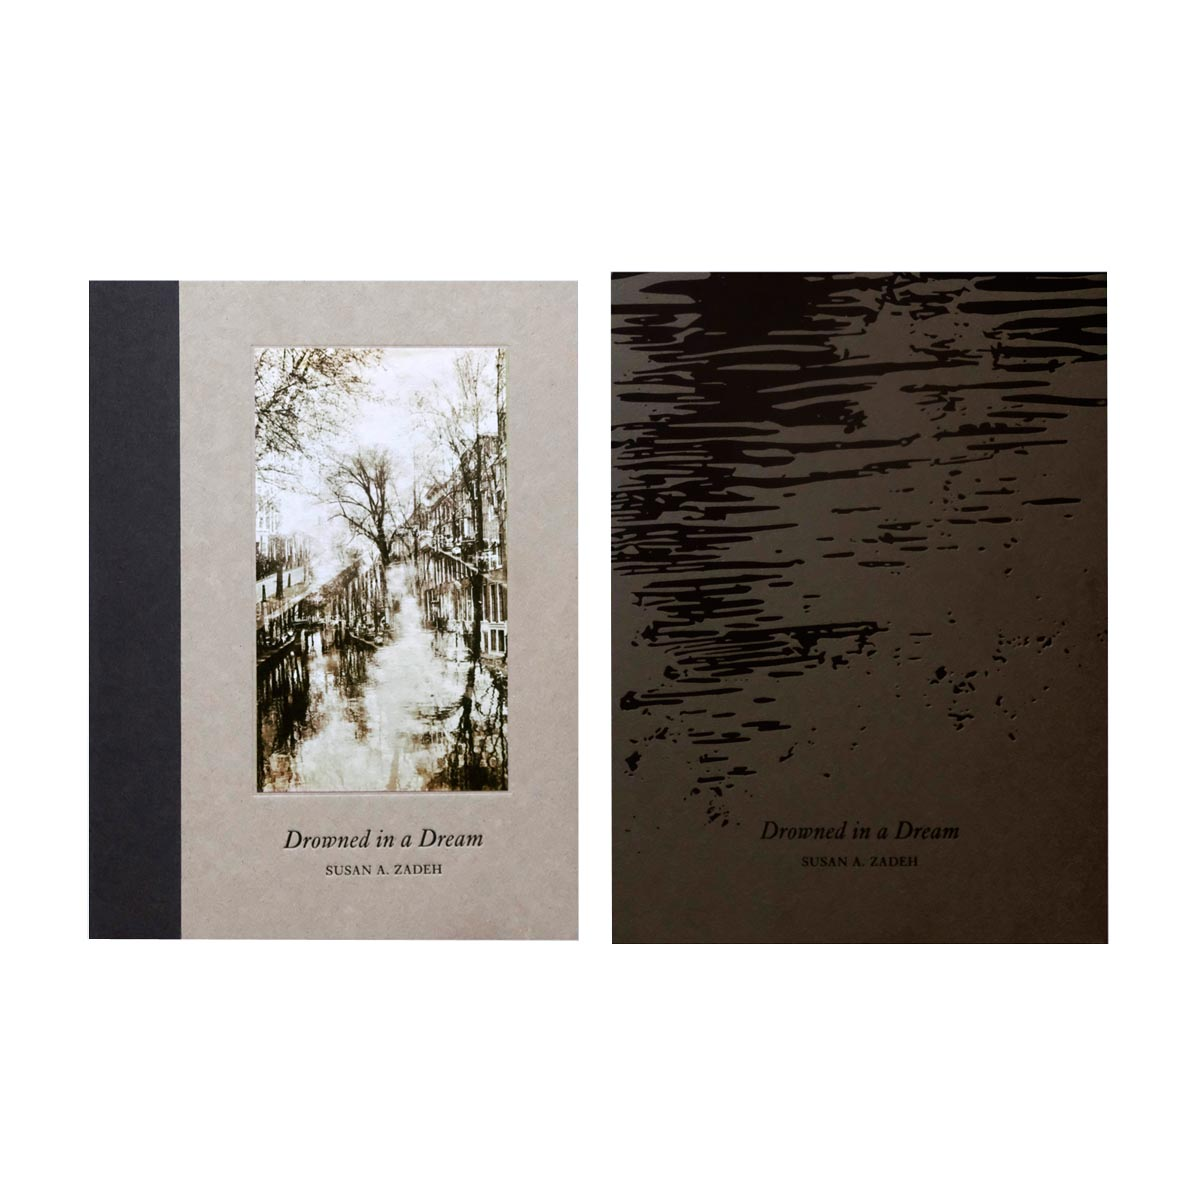 Susan A. Zadeh: Drowned in a Dream (Special Limited Edition with 2 Prints)